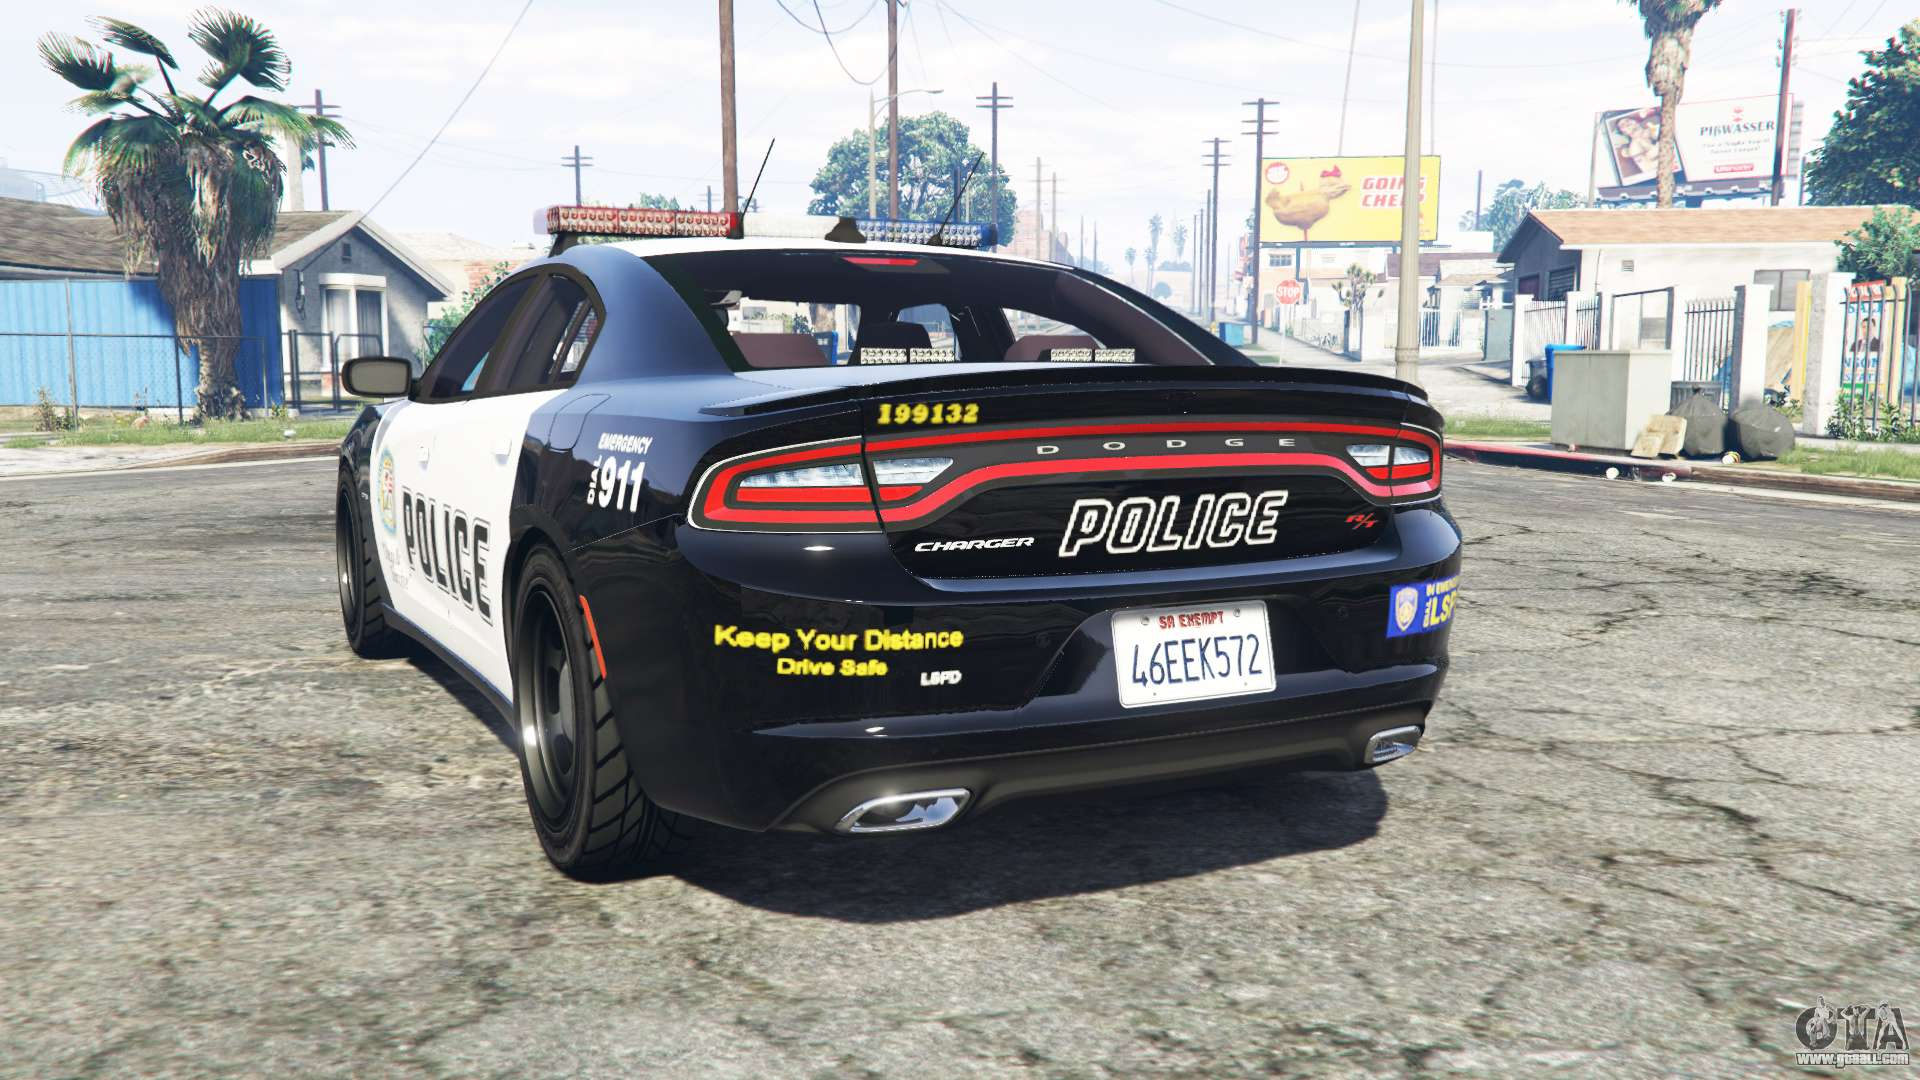 Dodge Charger RT 2015 Police v2.0 [replace] for GTA 5 2015 Police Charger